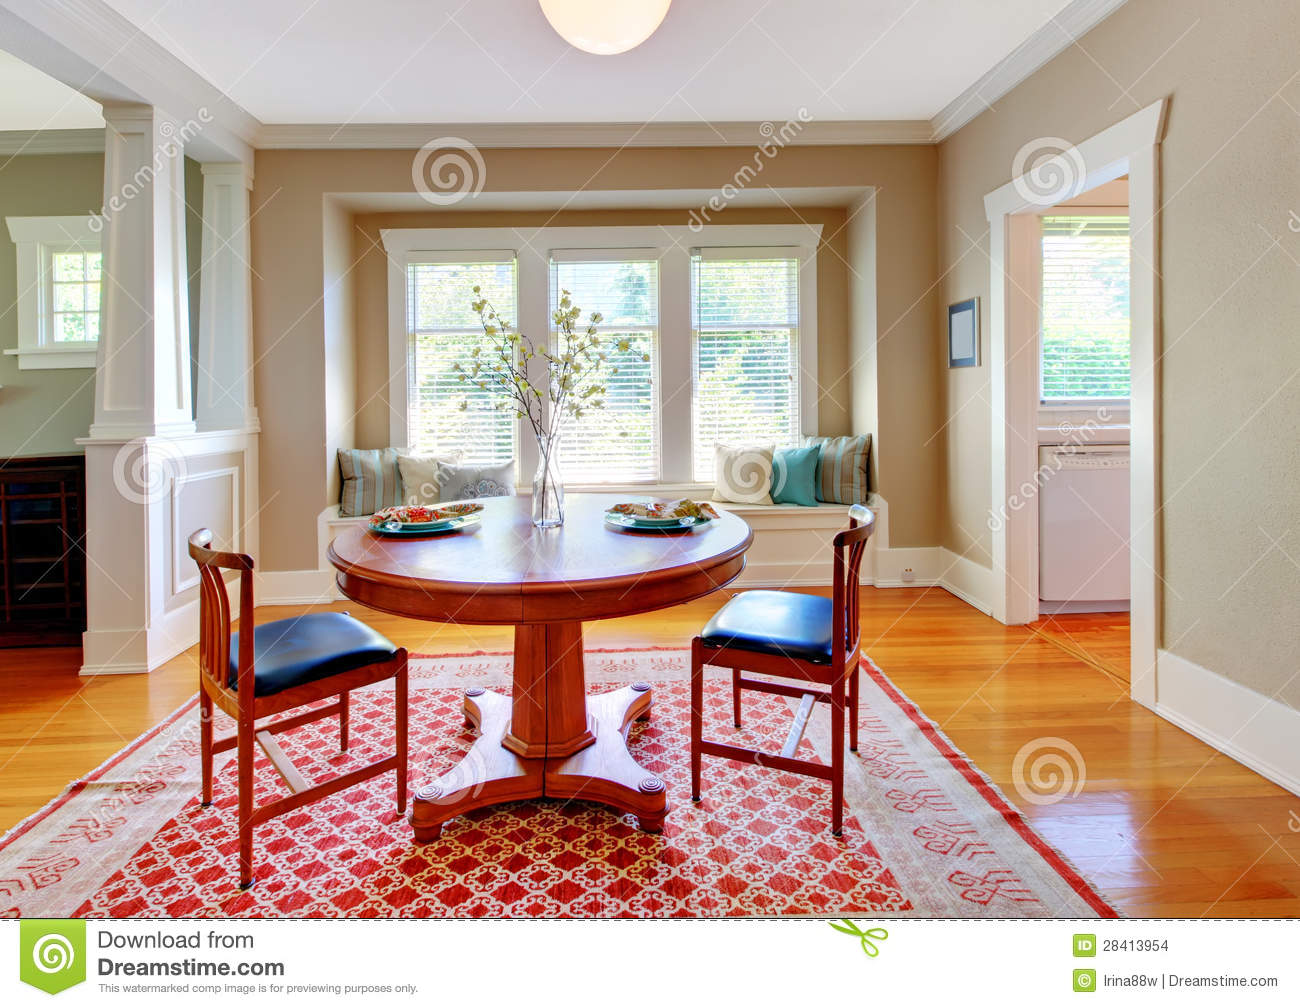 Beautiful Decor Of Dining Room With Beige, Blue And Red